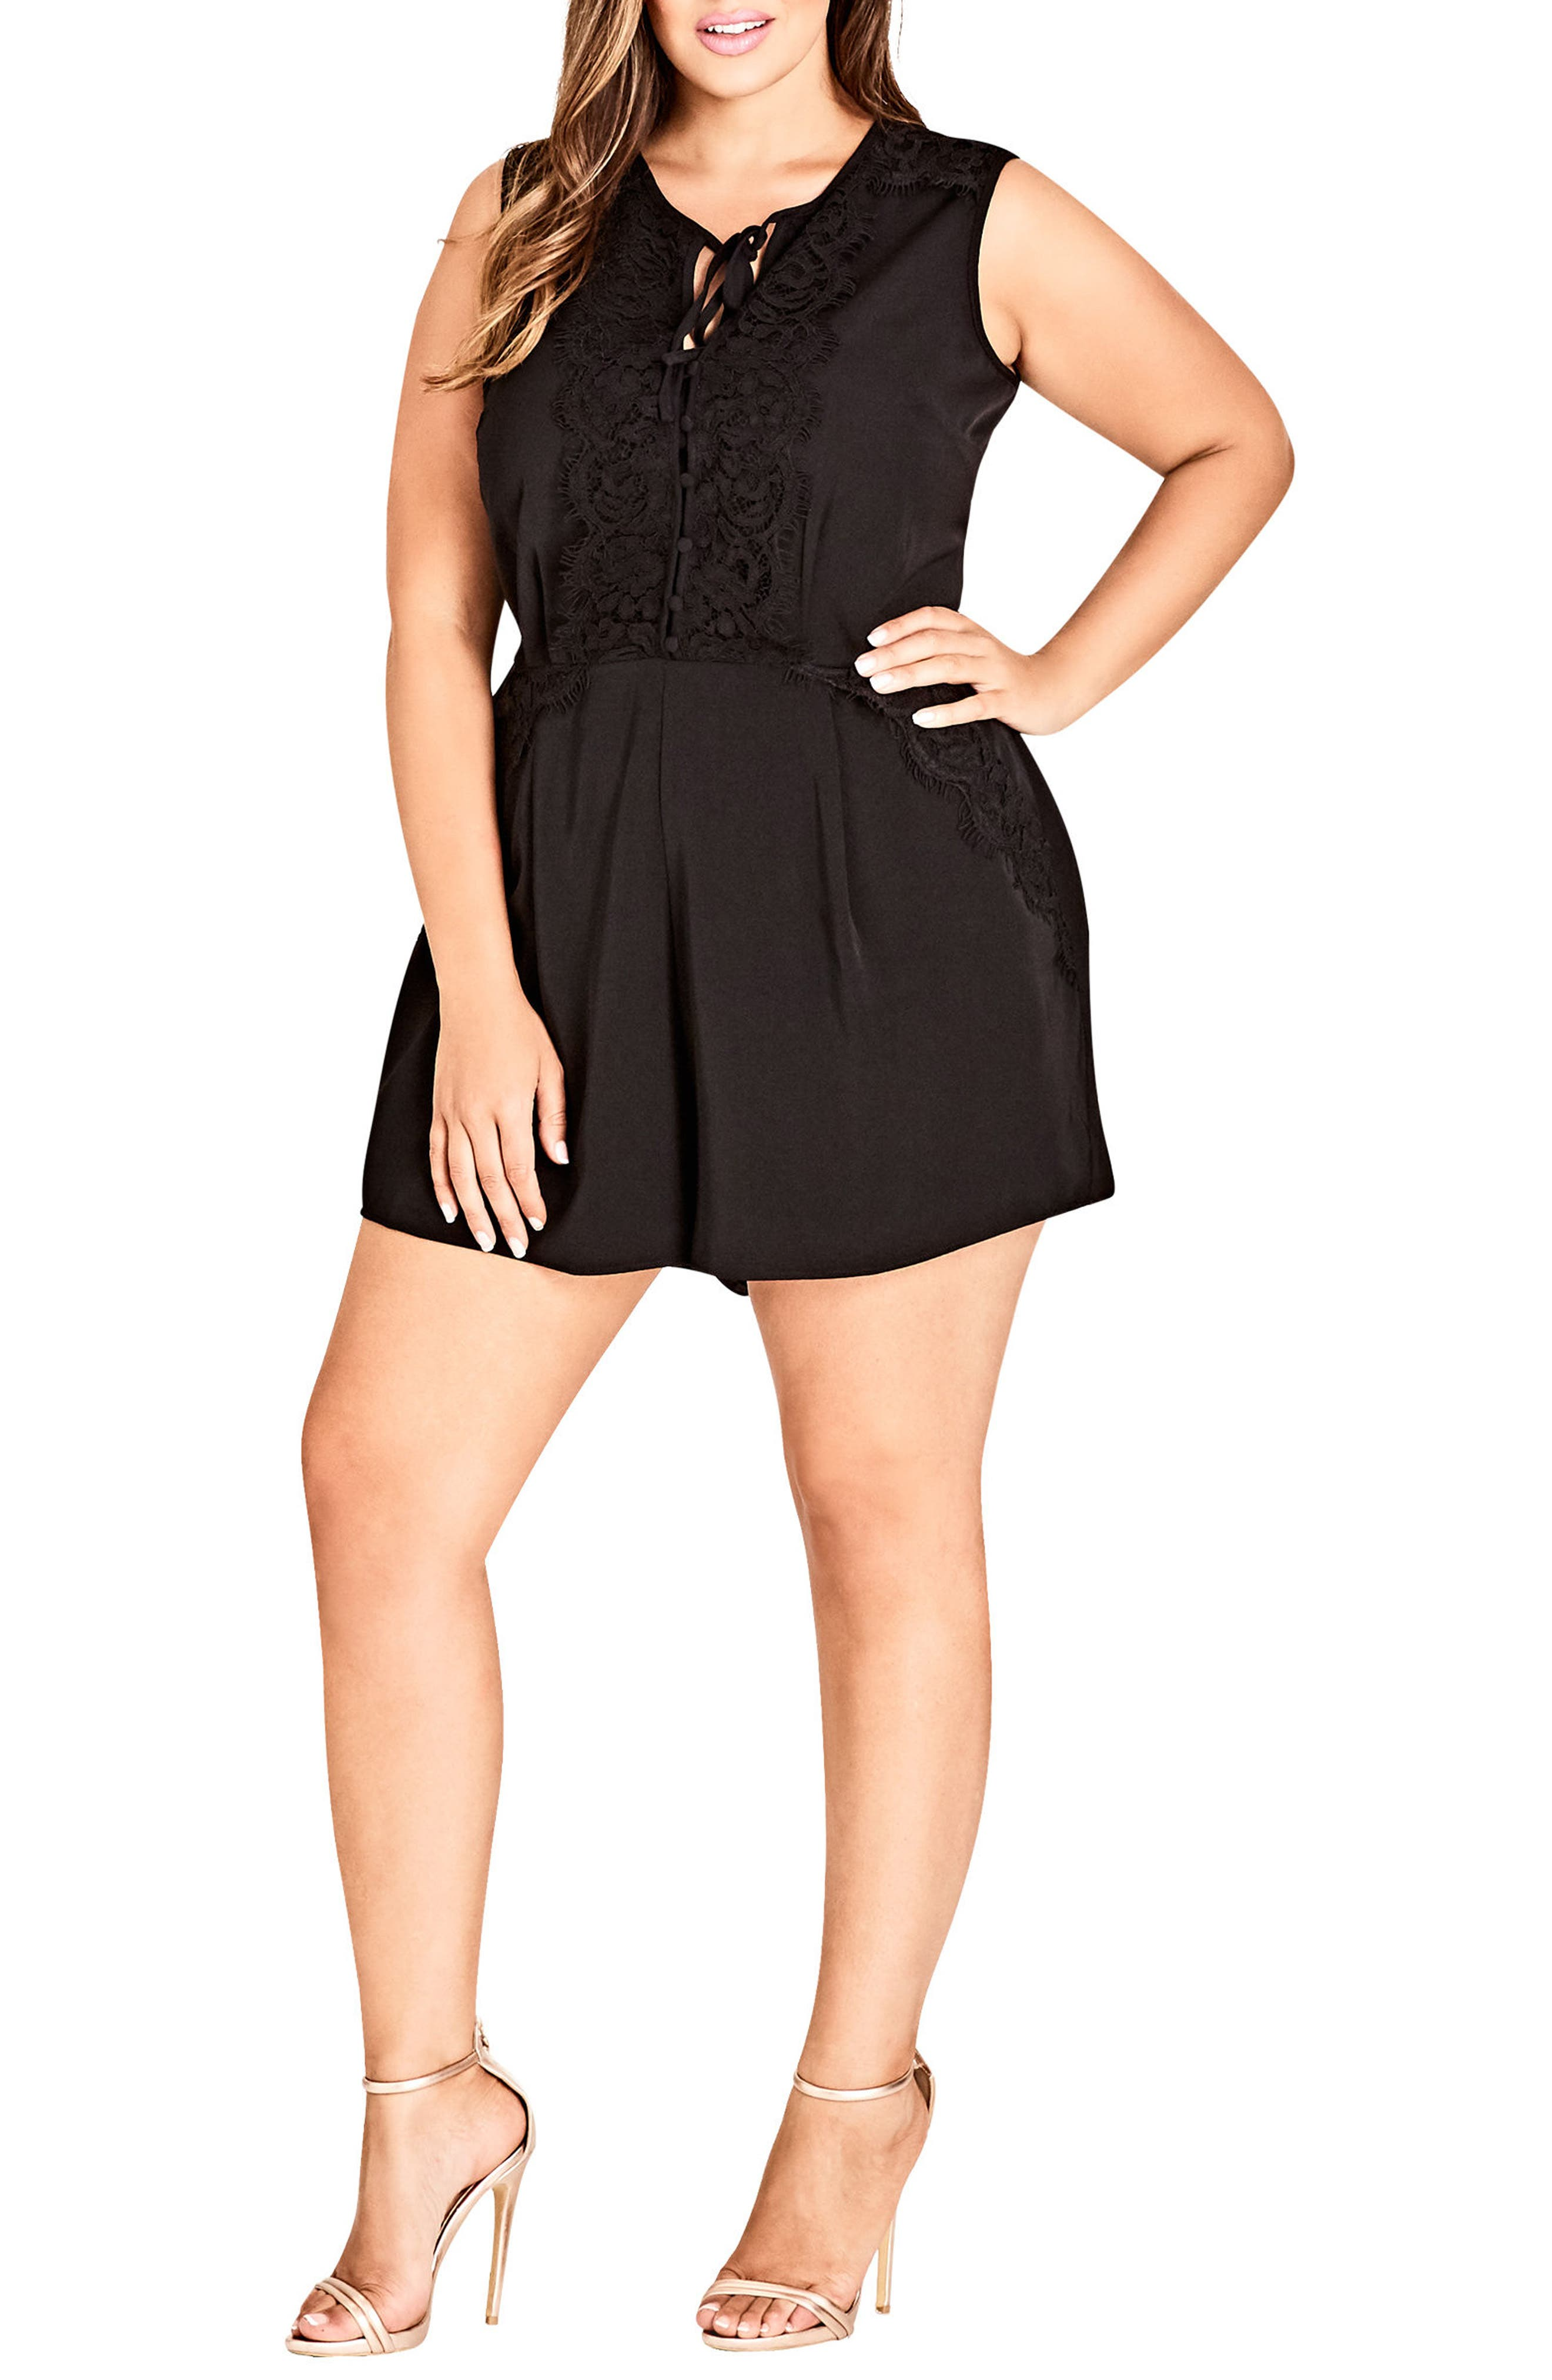 Lace Dream Playsuit,                             Main thumbnail 1, color,                             BLACK